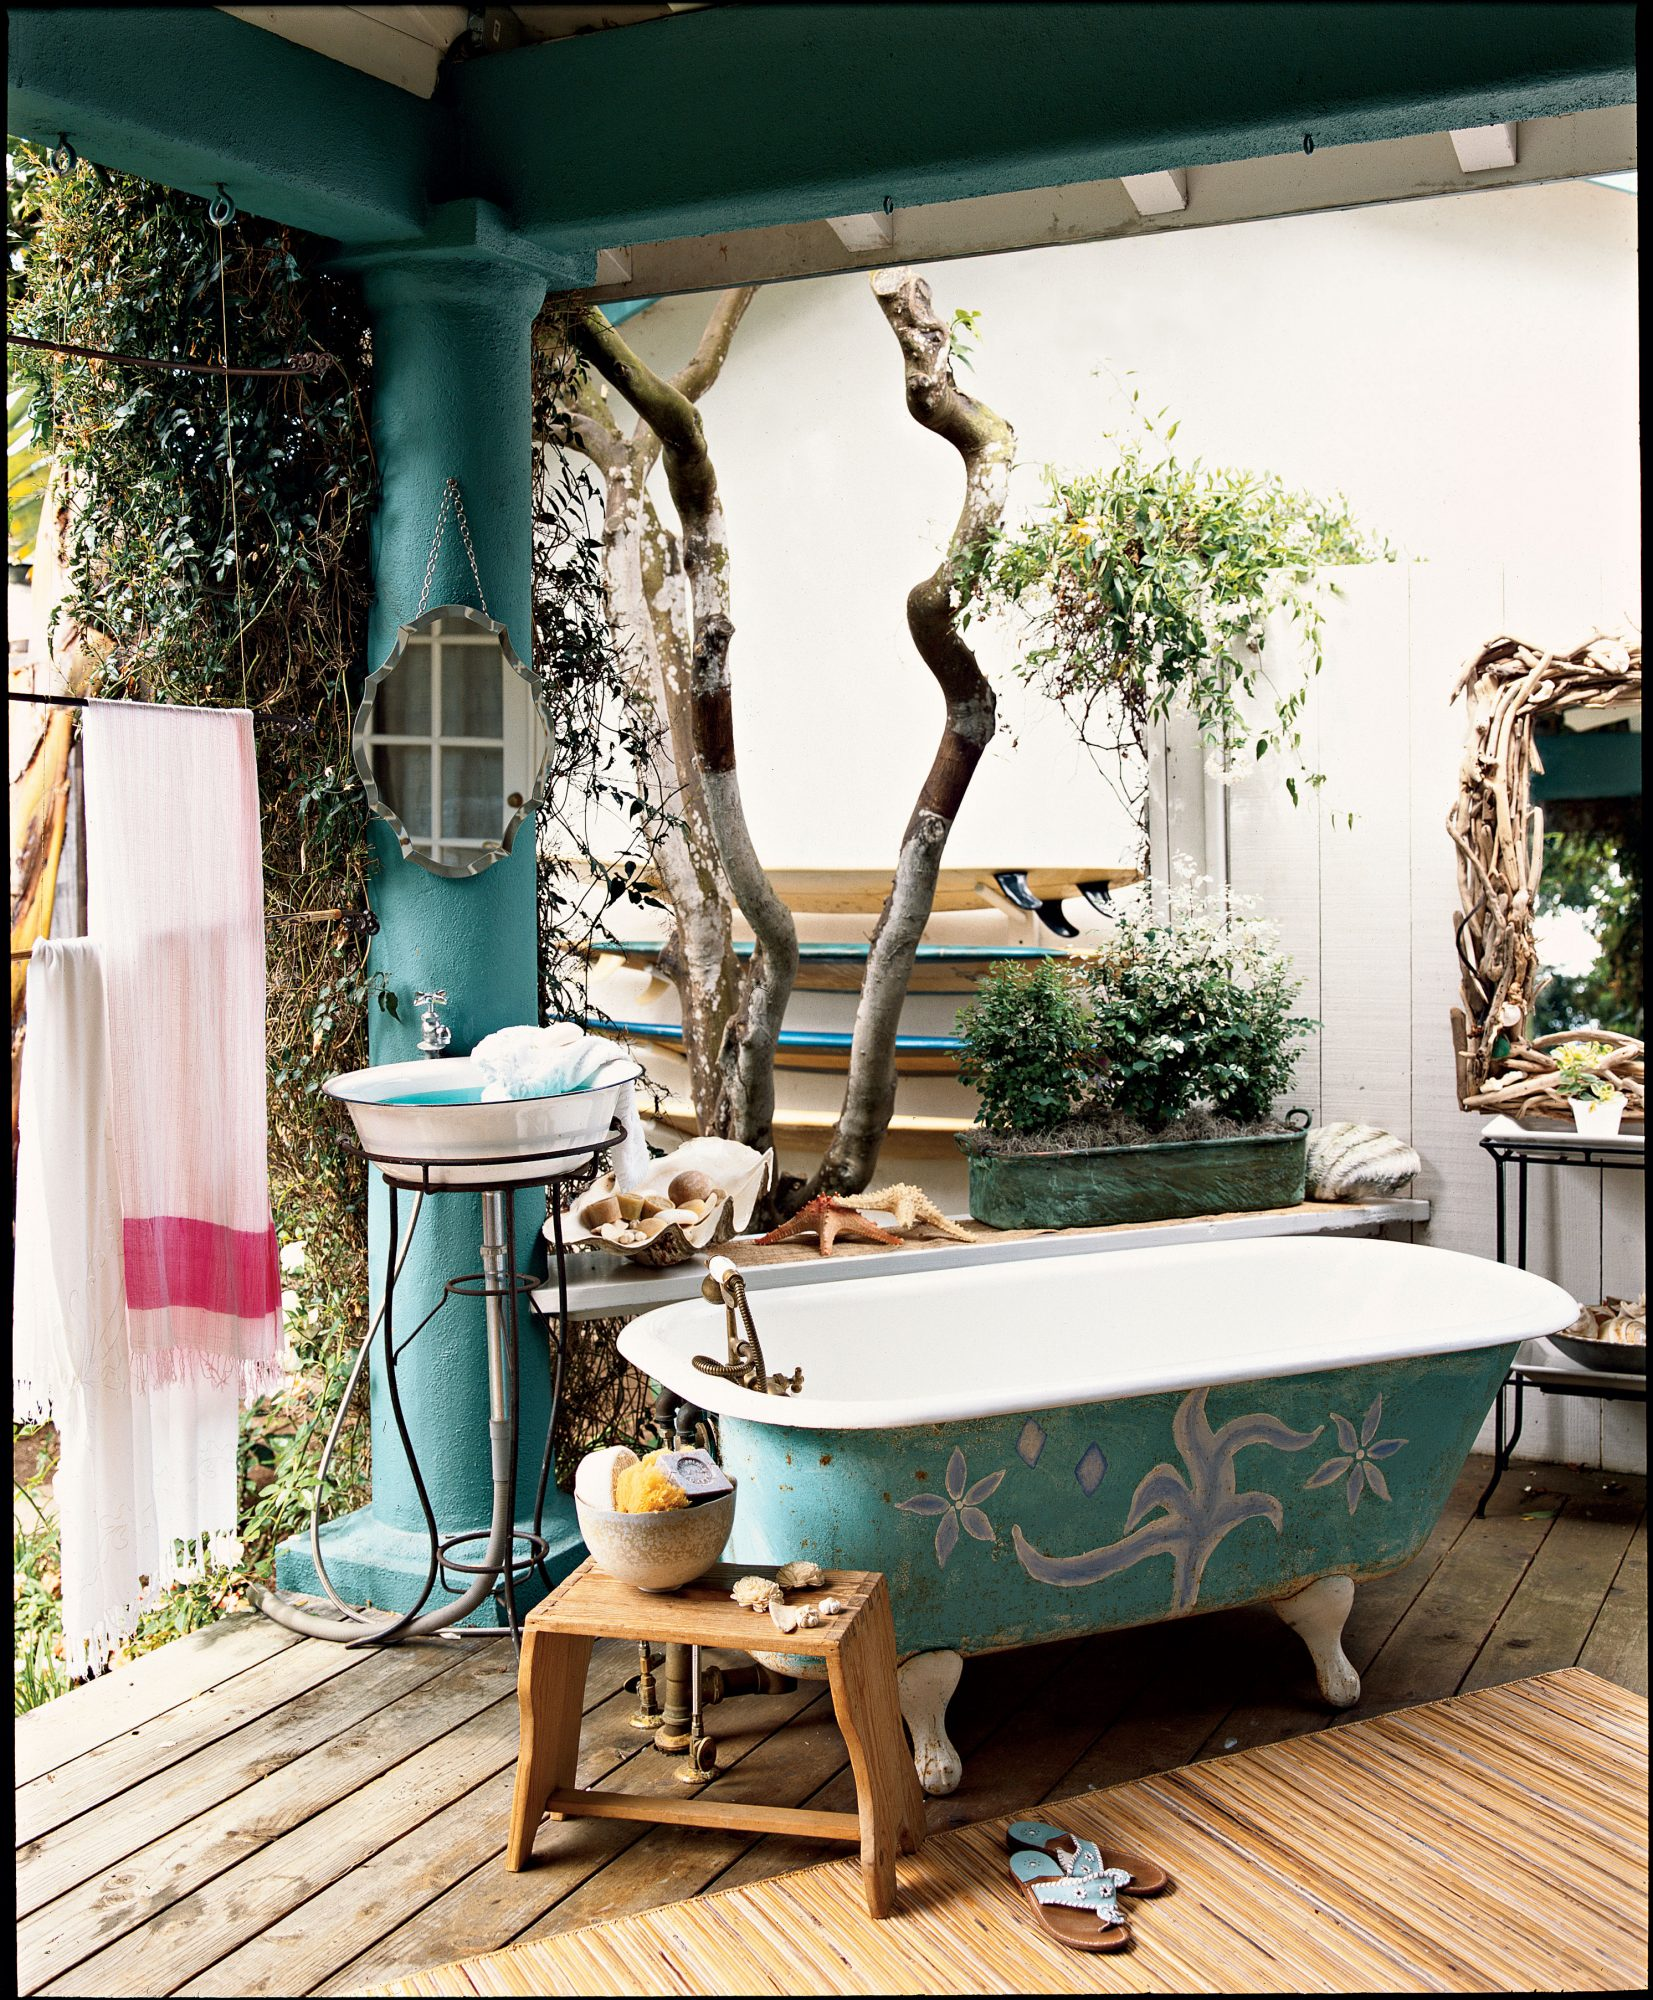 a clawfoot tub sits outside on a deck alongside a standing a pedestal sink with beach towels, a mirror and other accessories close at hand